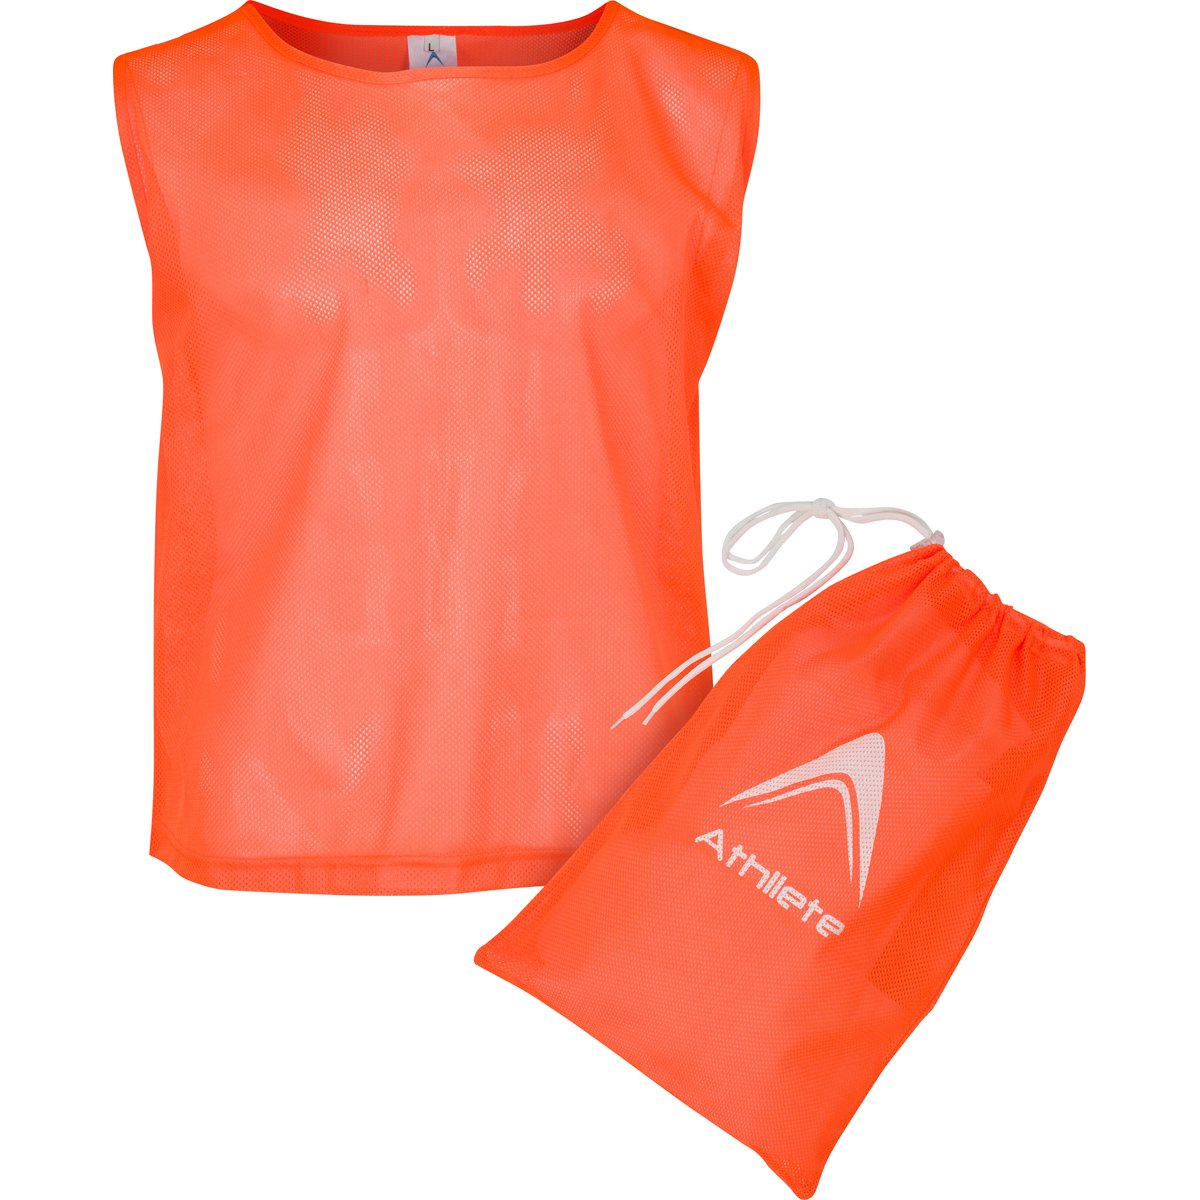 Athllete Set of 12 - Adult XXL Scrimmage Vests/Pinnies/Team Practice Jerseys with Free Carry Bag (Flame Orange, XX-Large) by Athllete